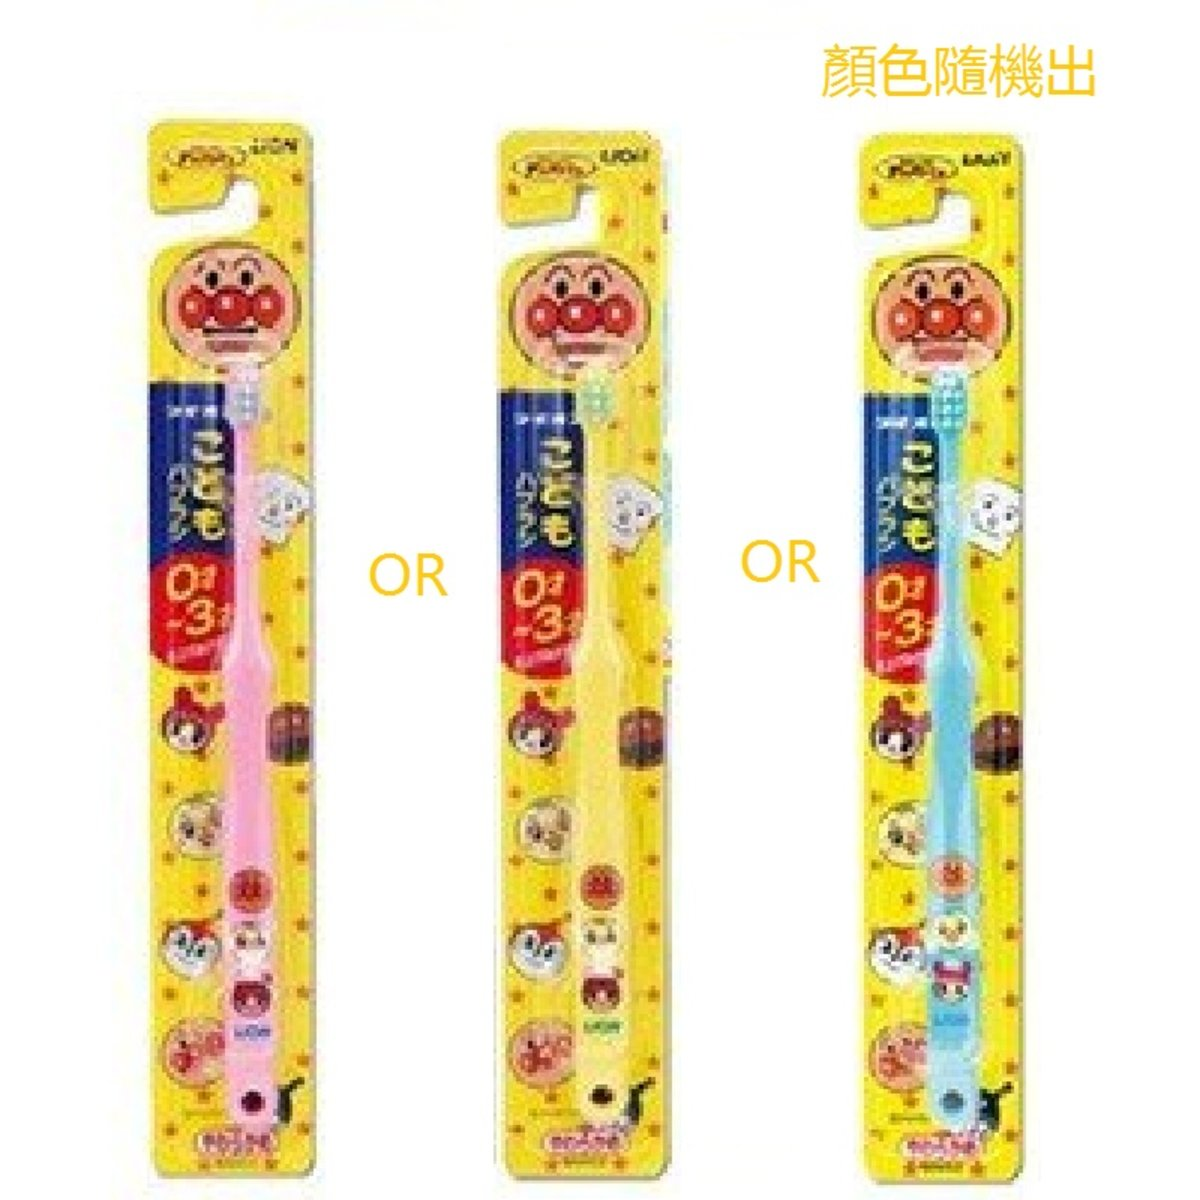 Lion Bread Superman Strengthen Tooth Child Toothbrush (Yellow) 0-3 years old  1pc  (Random Colors)